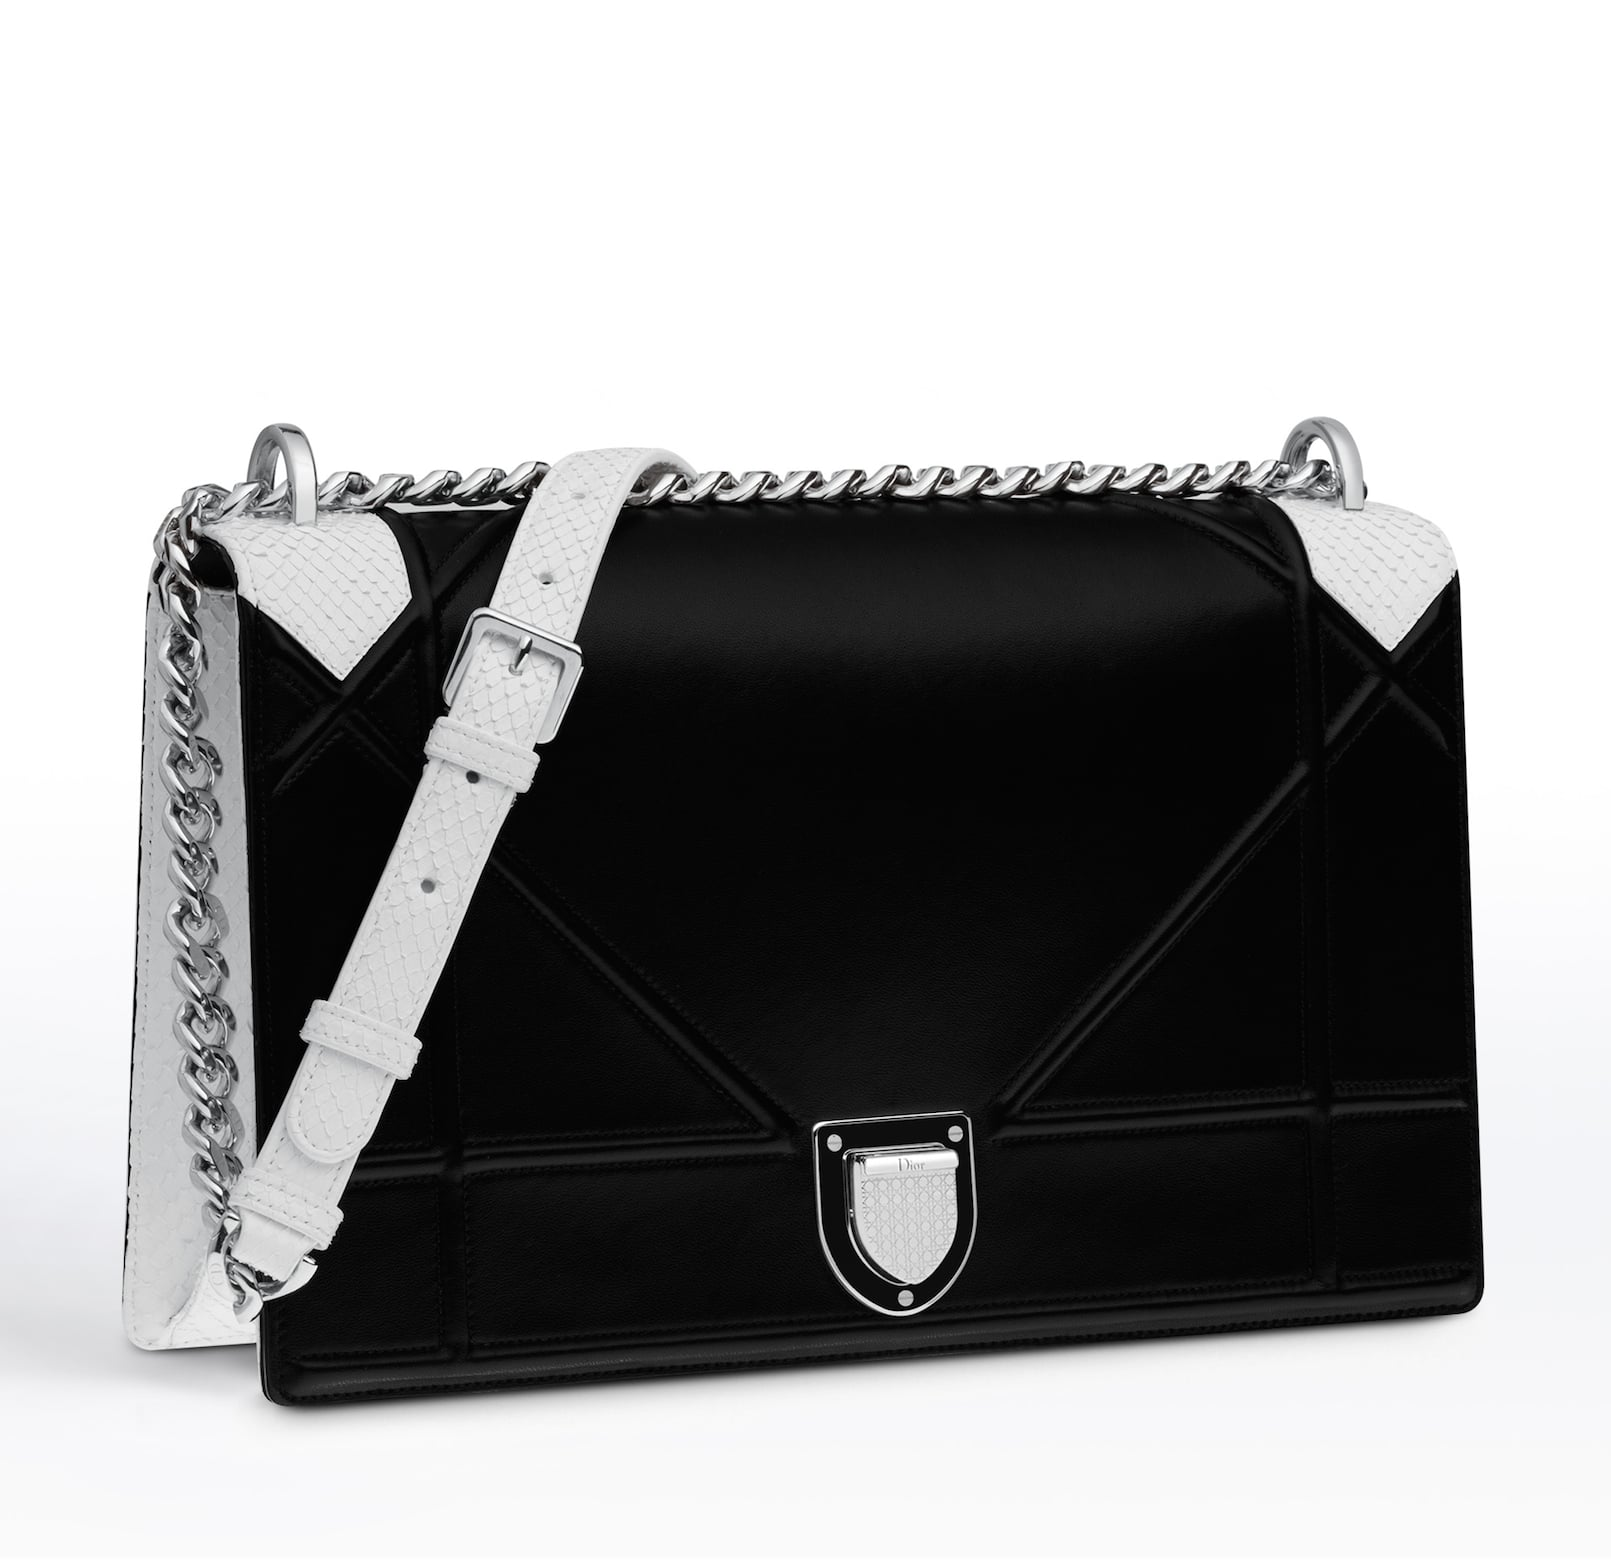 09c61d6654a8 Dior Diorama Flap Bag Reference Guide